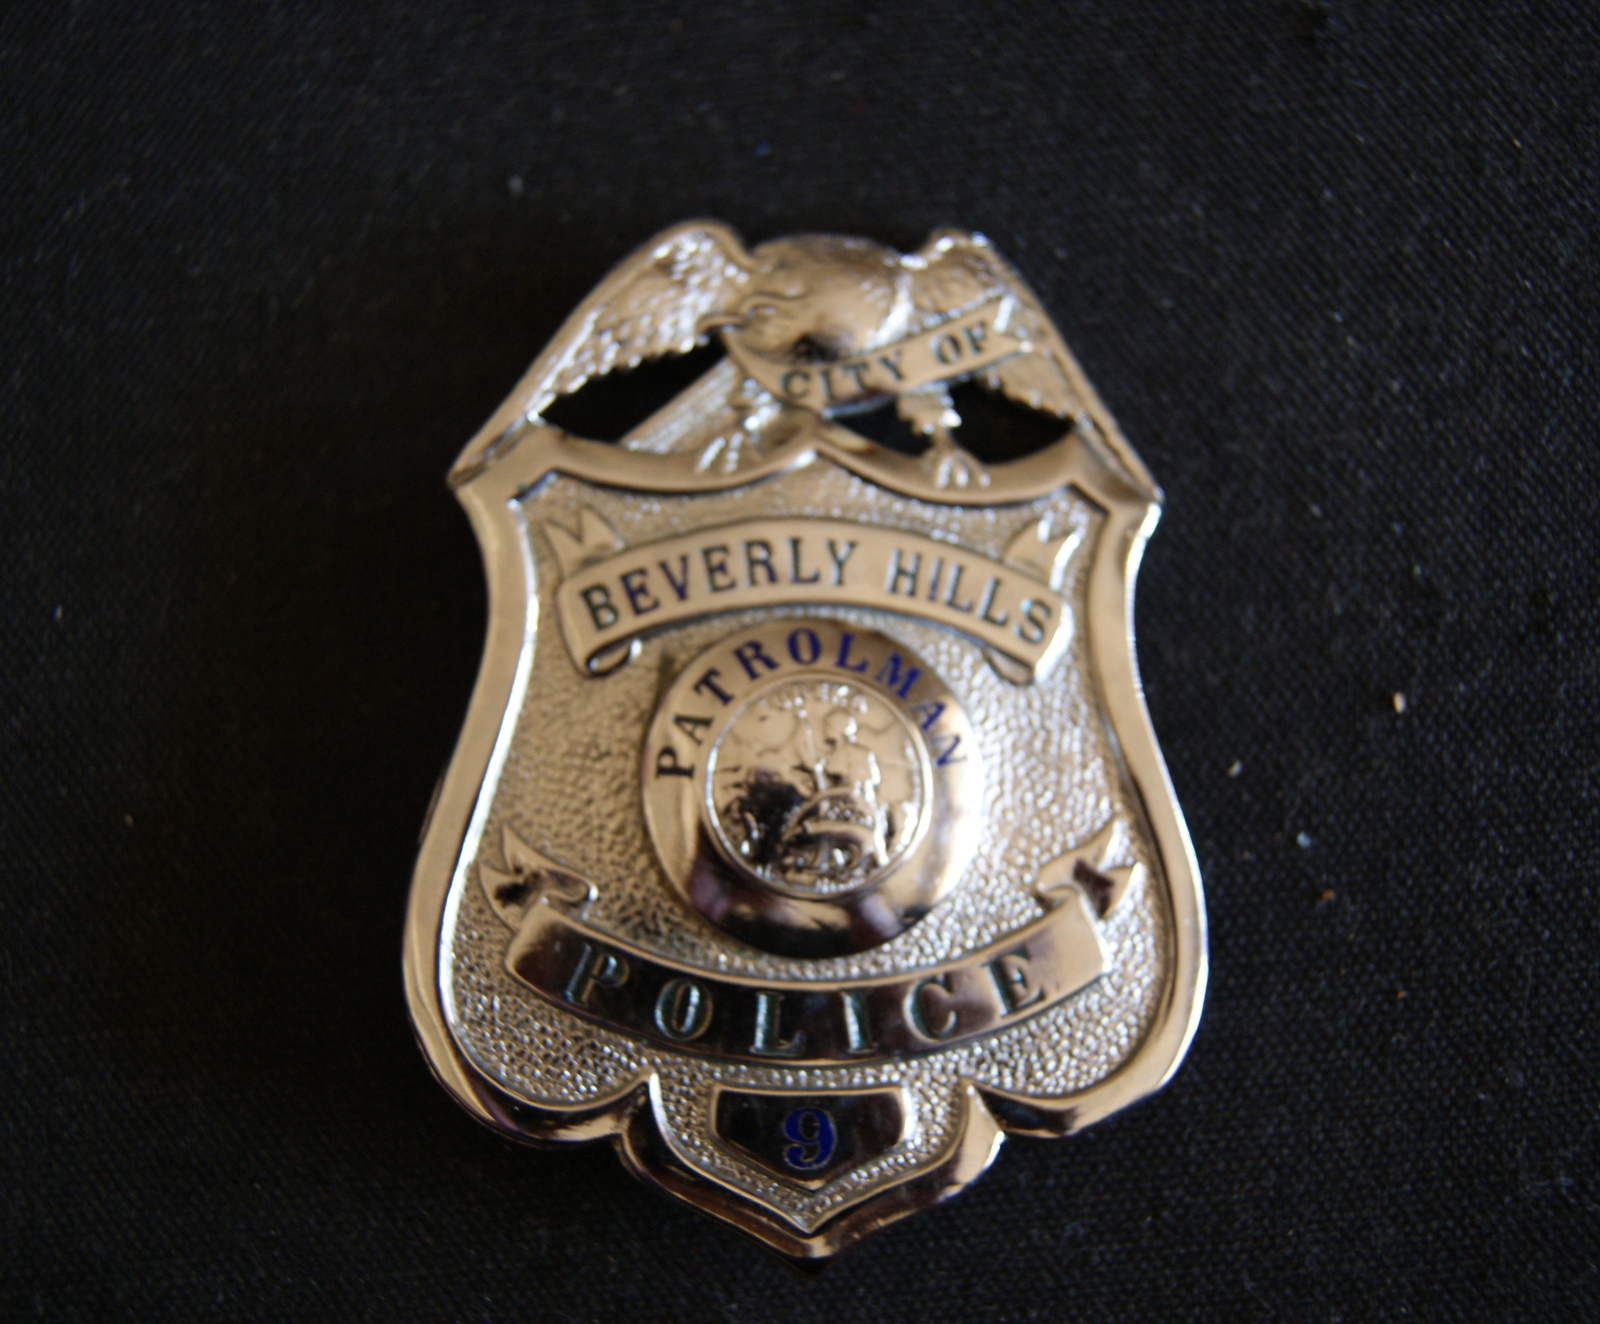 Beverly Hills Cal,Scarce Antique Police Badge W/ Wallet,.Hmk L.A Rubber Stamp Co